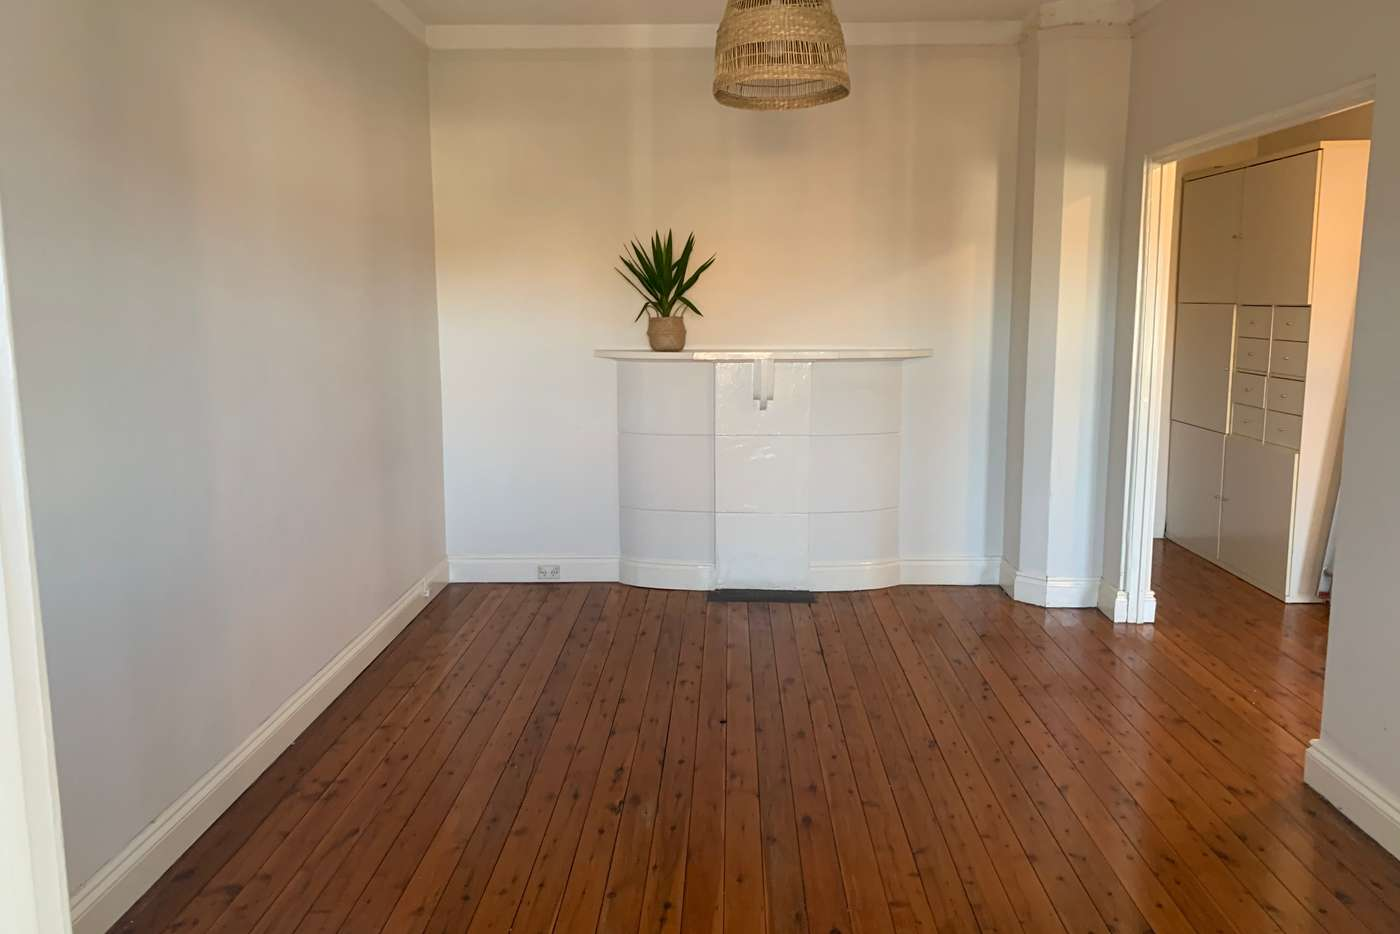 Main view of Homely unit listing, 8/130 Old South Head Road, Bellevue Hill NSW 2023